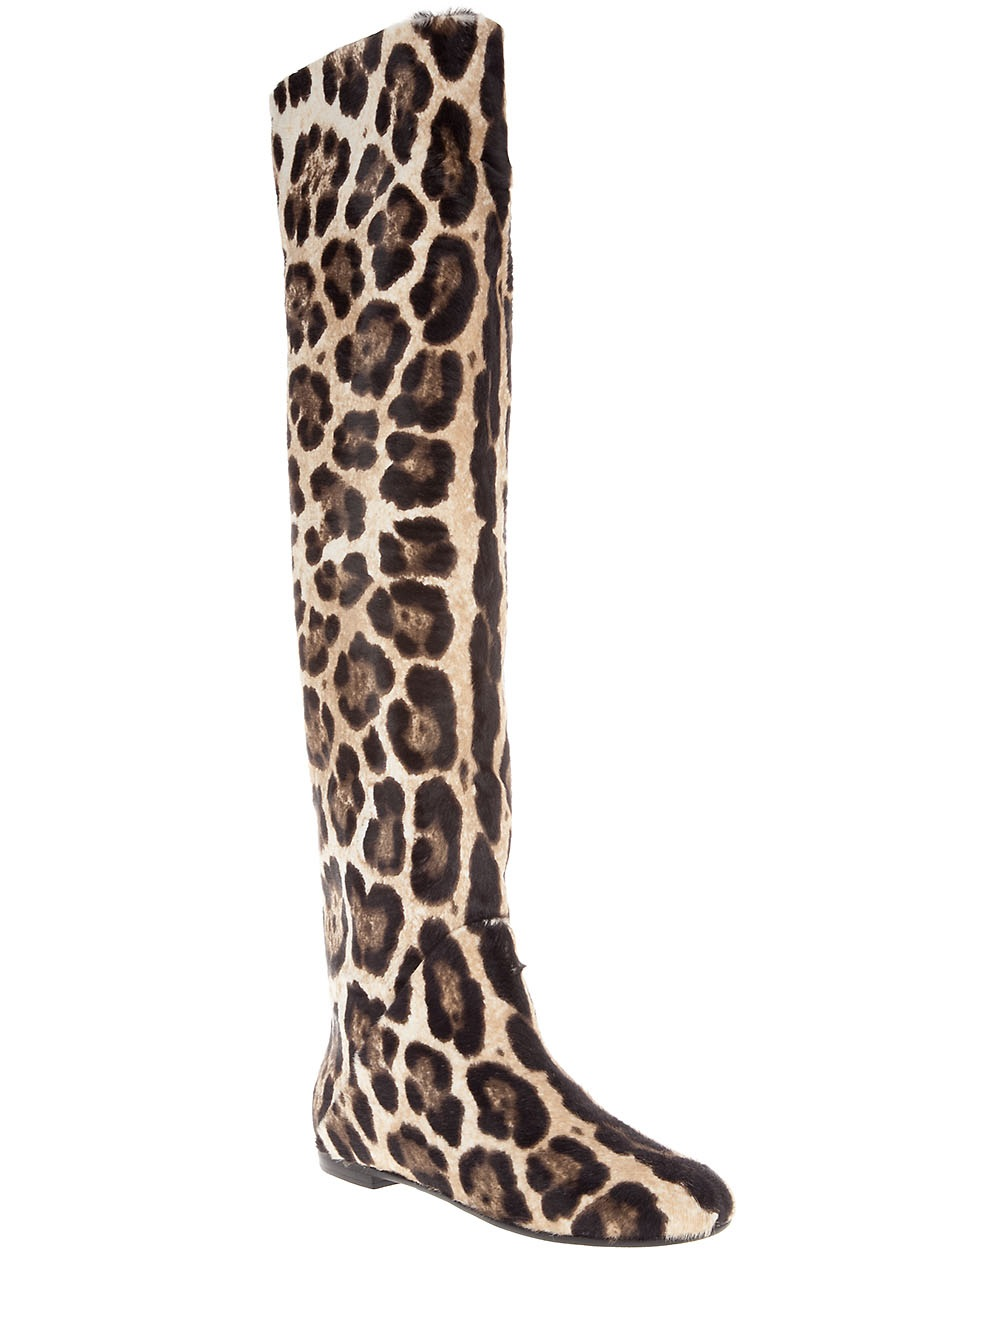 Find leopard skin shoes at ShopStyle. Shop the latest collection of leopard skin shoes from the most popular stores - all in one place.